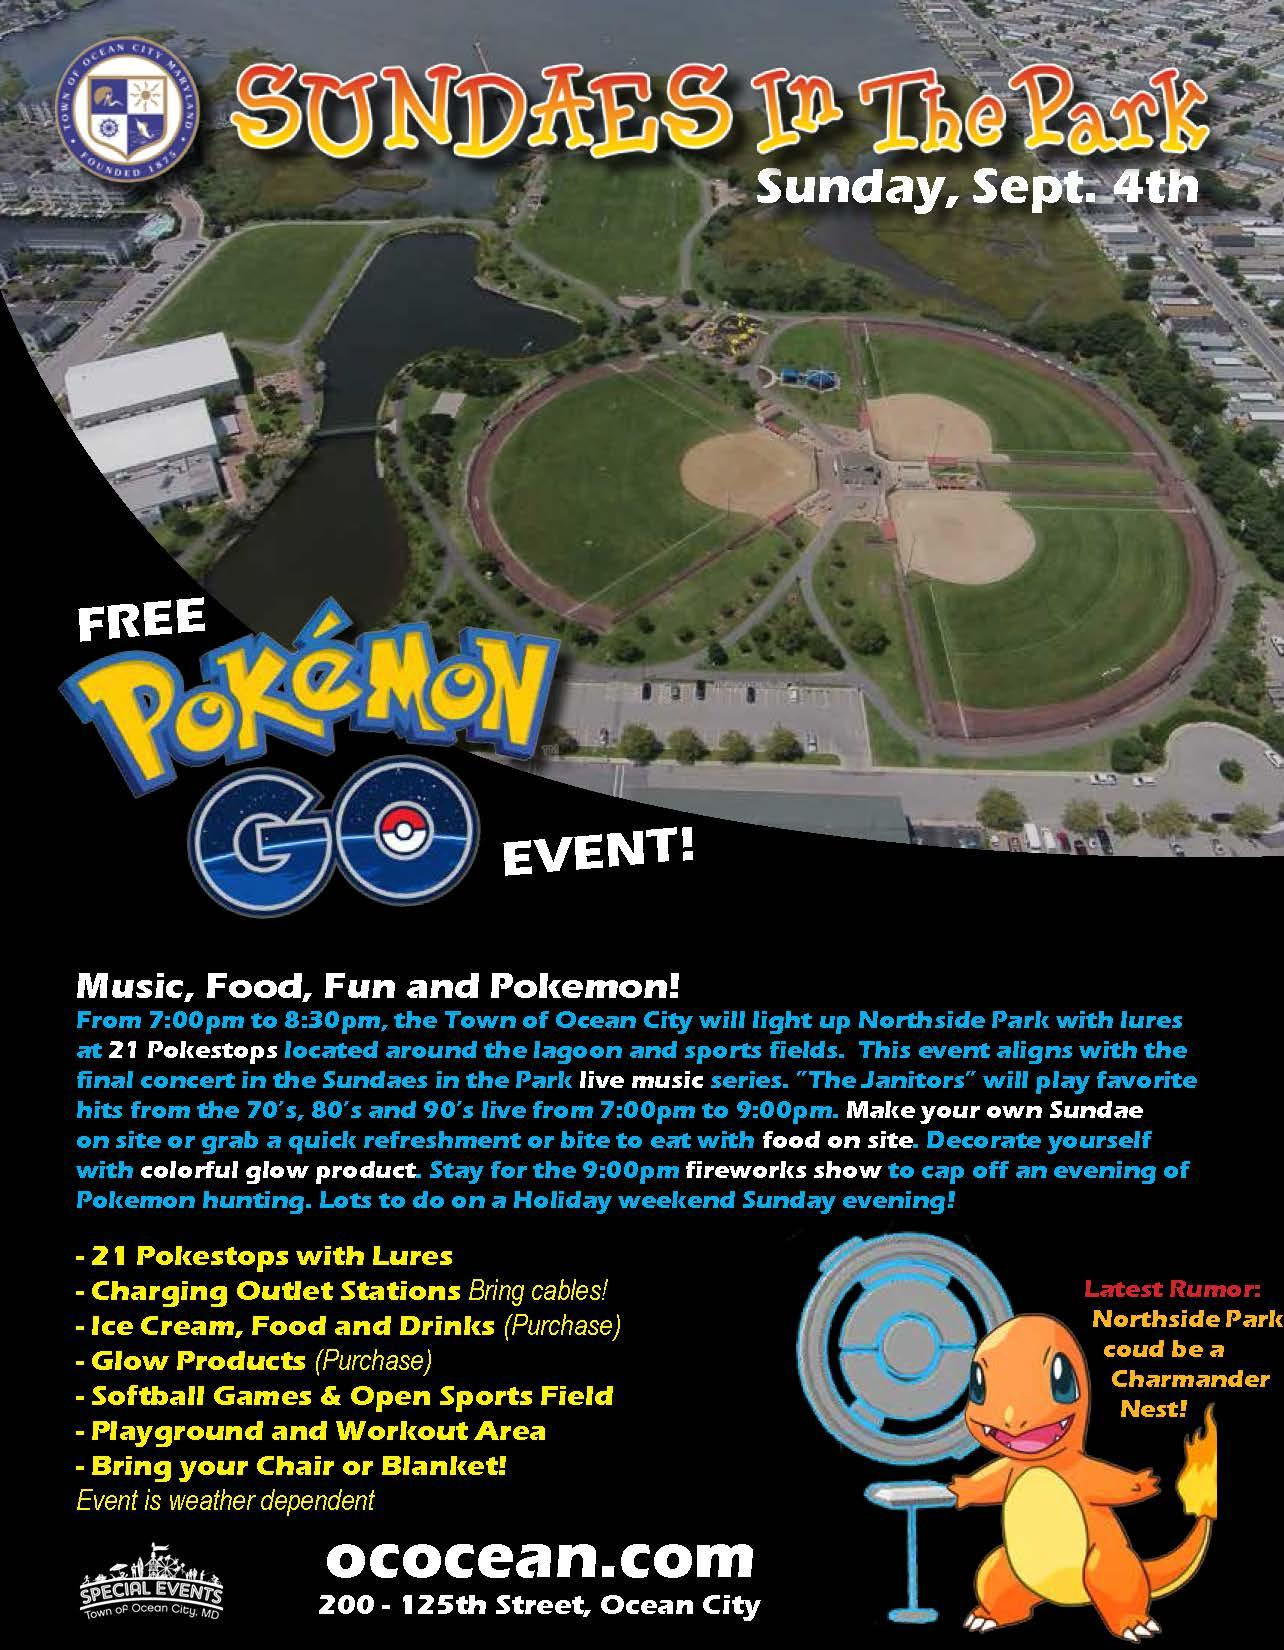 Sundaes in the Park will Wrap Up with Pokémon Go Event -